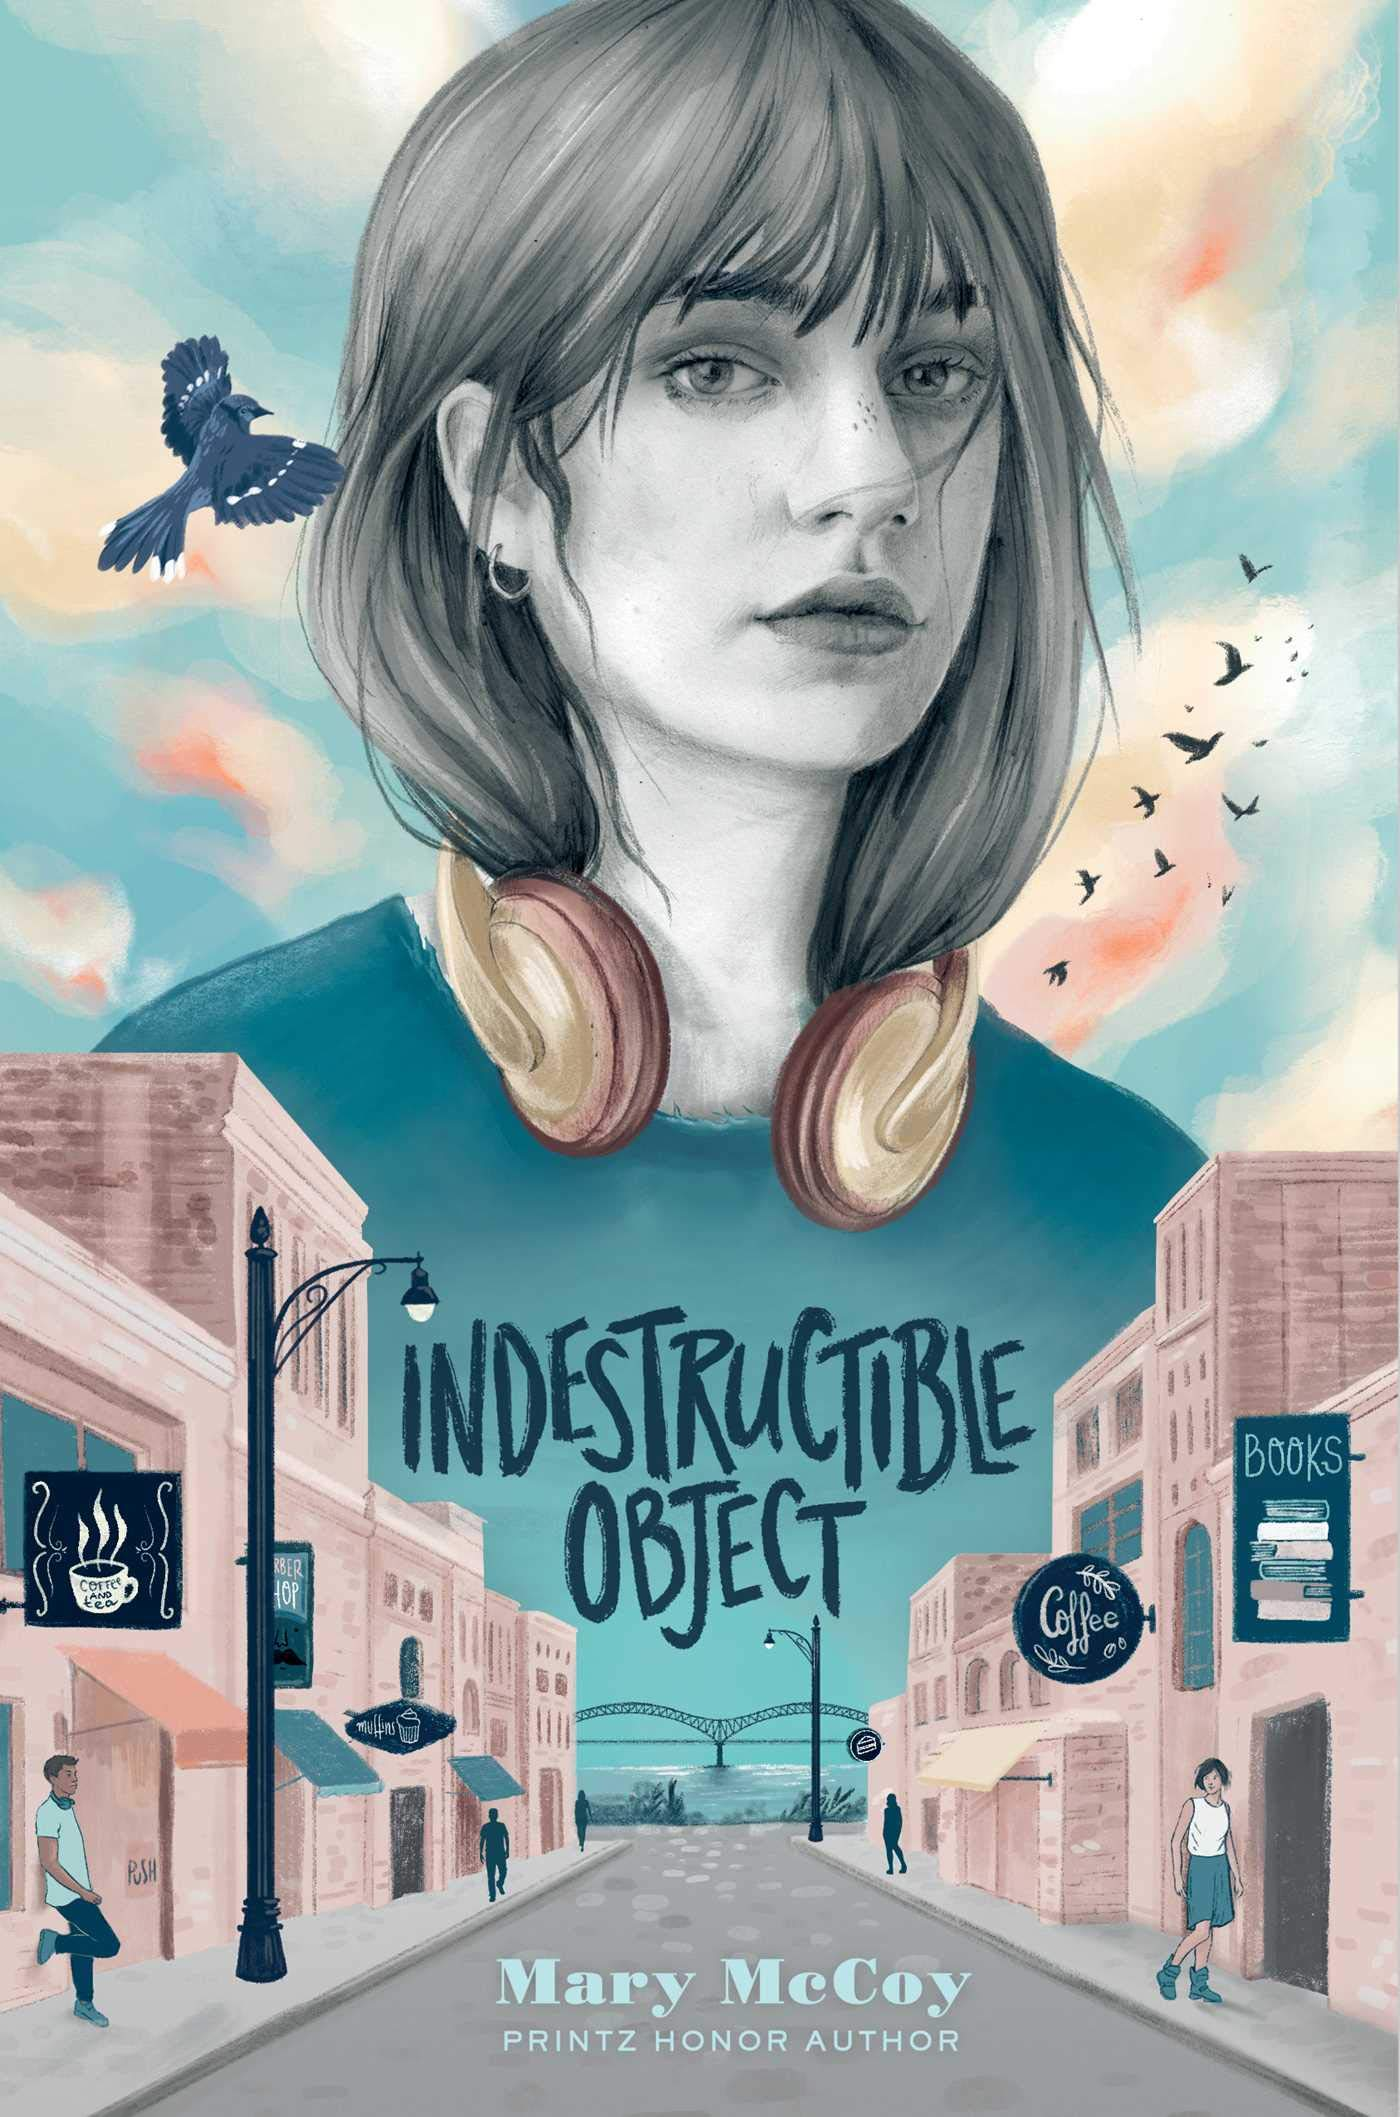 The cover of Indestructible Object by Mary McCoy